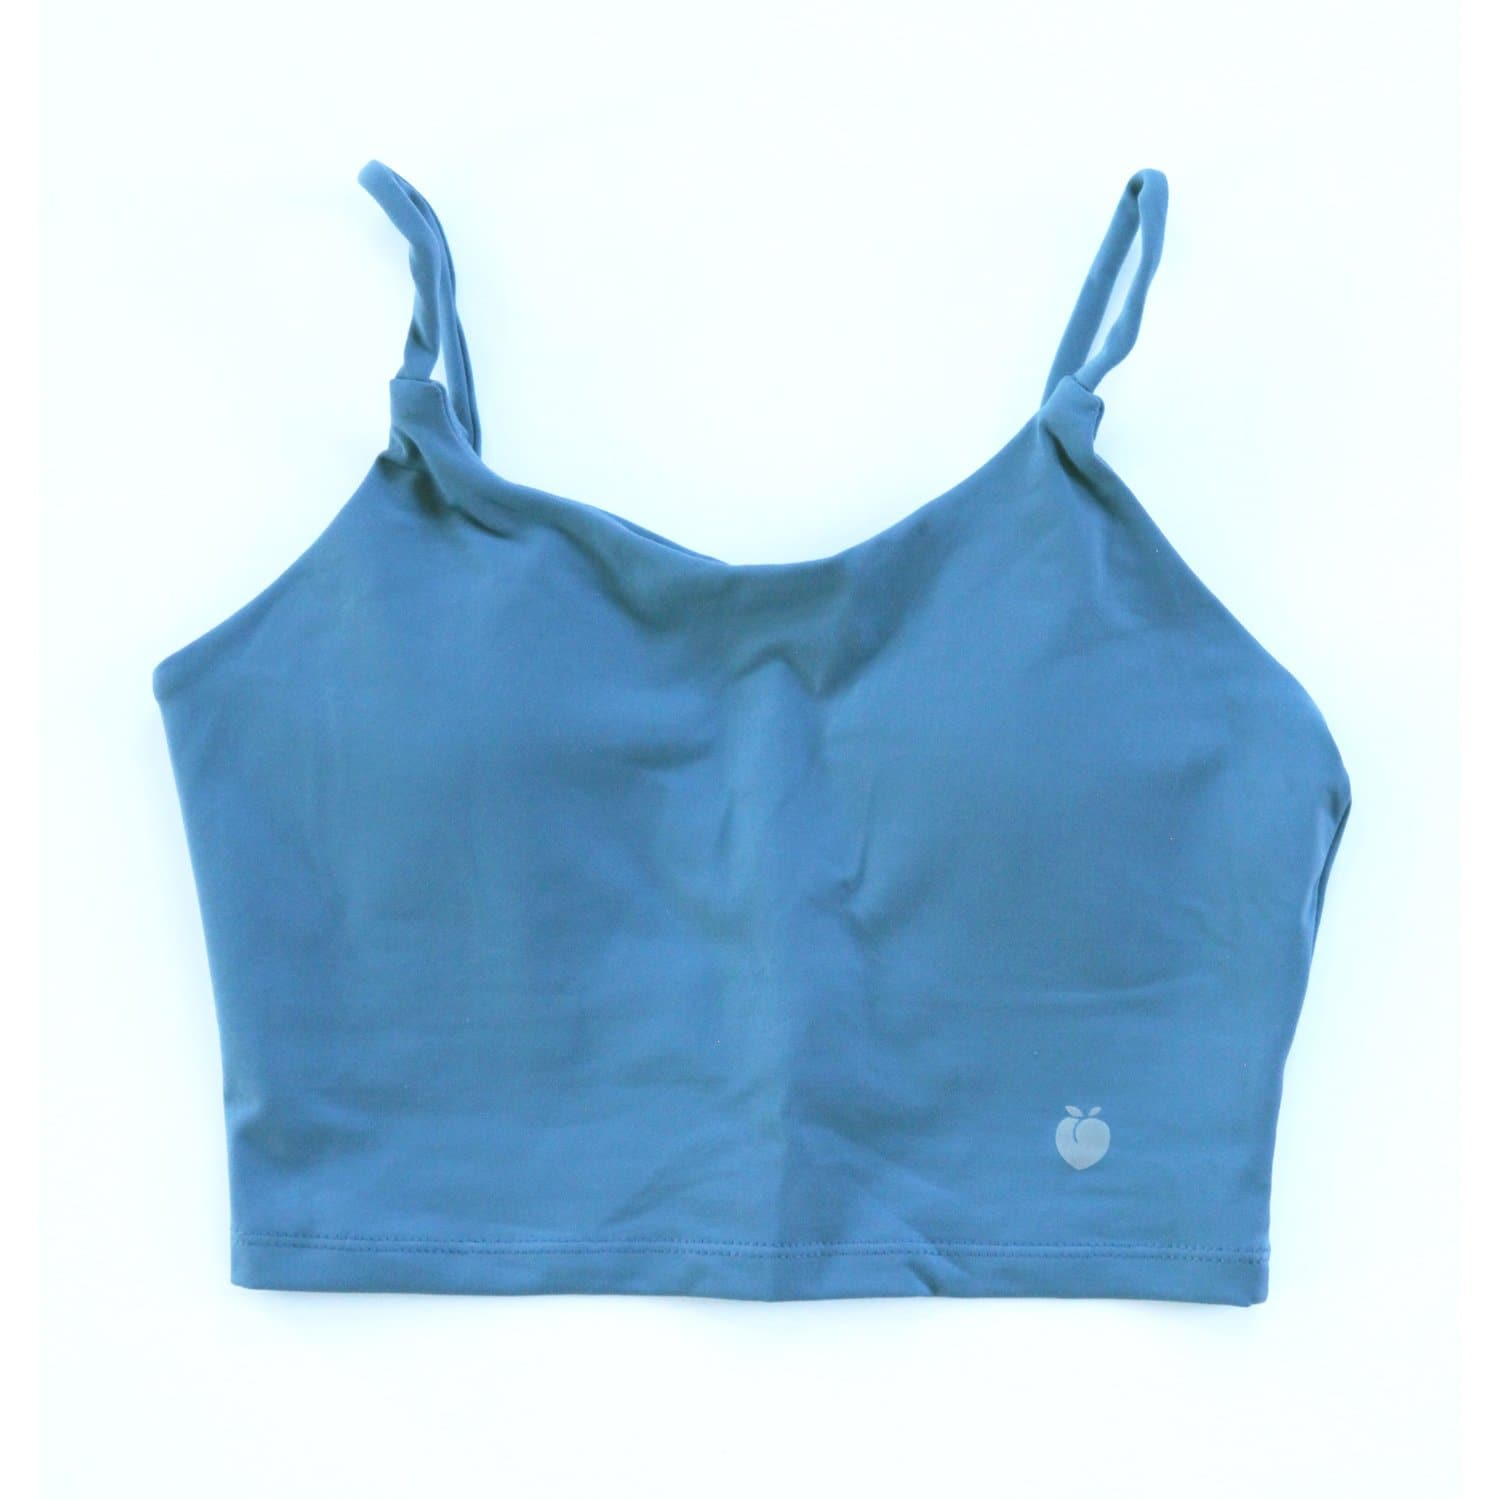 String Crop Top Bra - Slate Blue